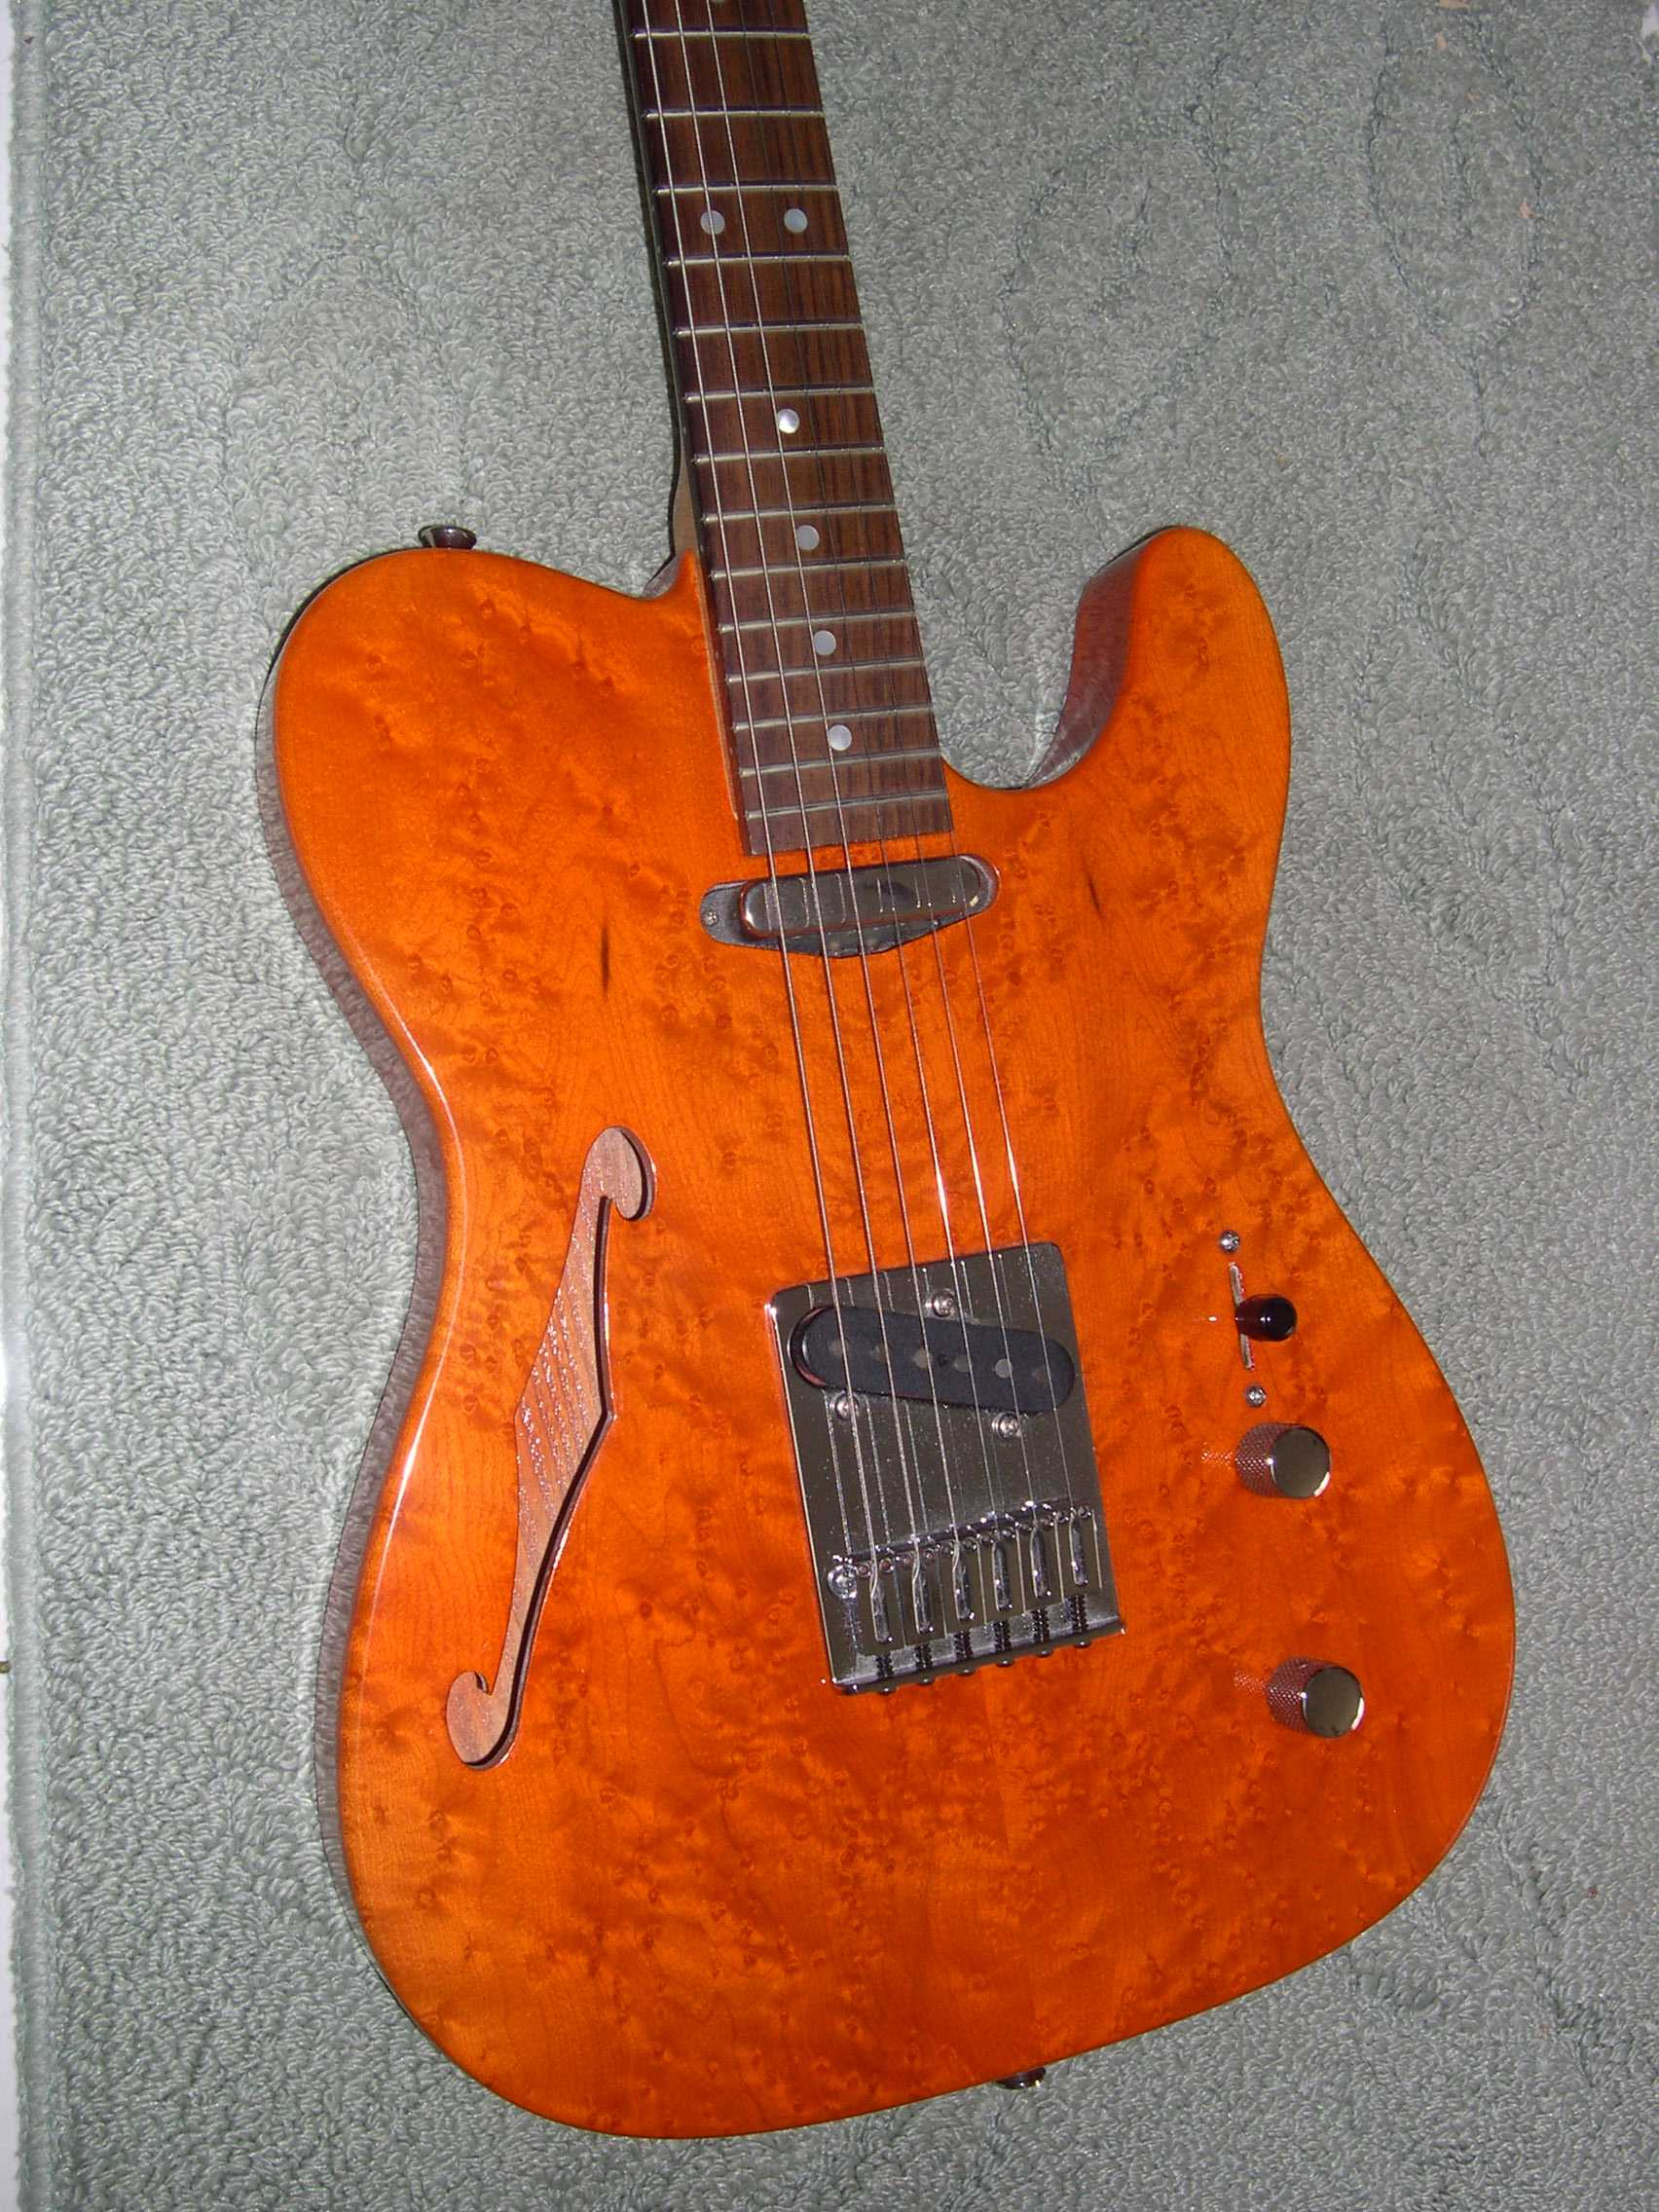 Bozo's Fender Guitar Pages - 1992 Warmoth Thinline Telecaster